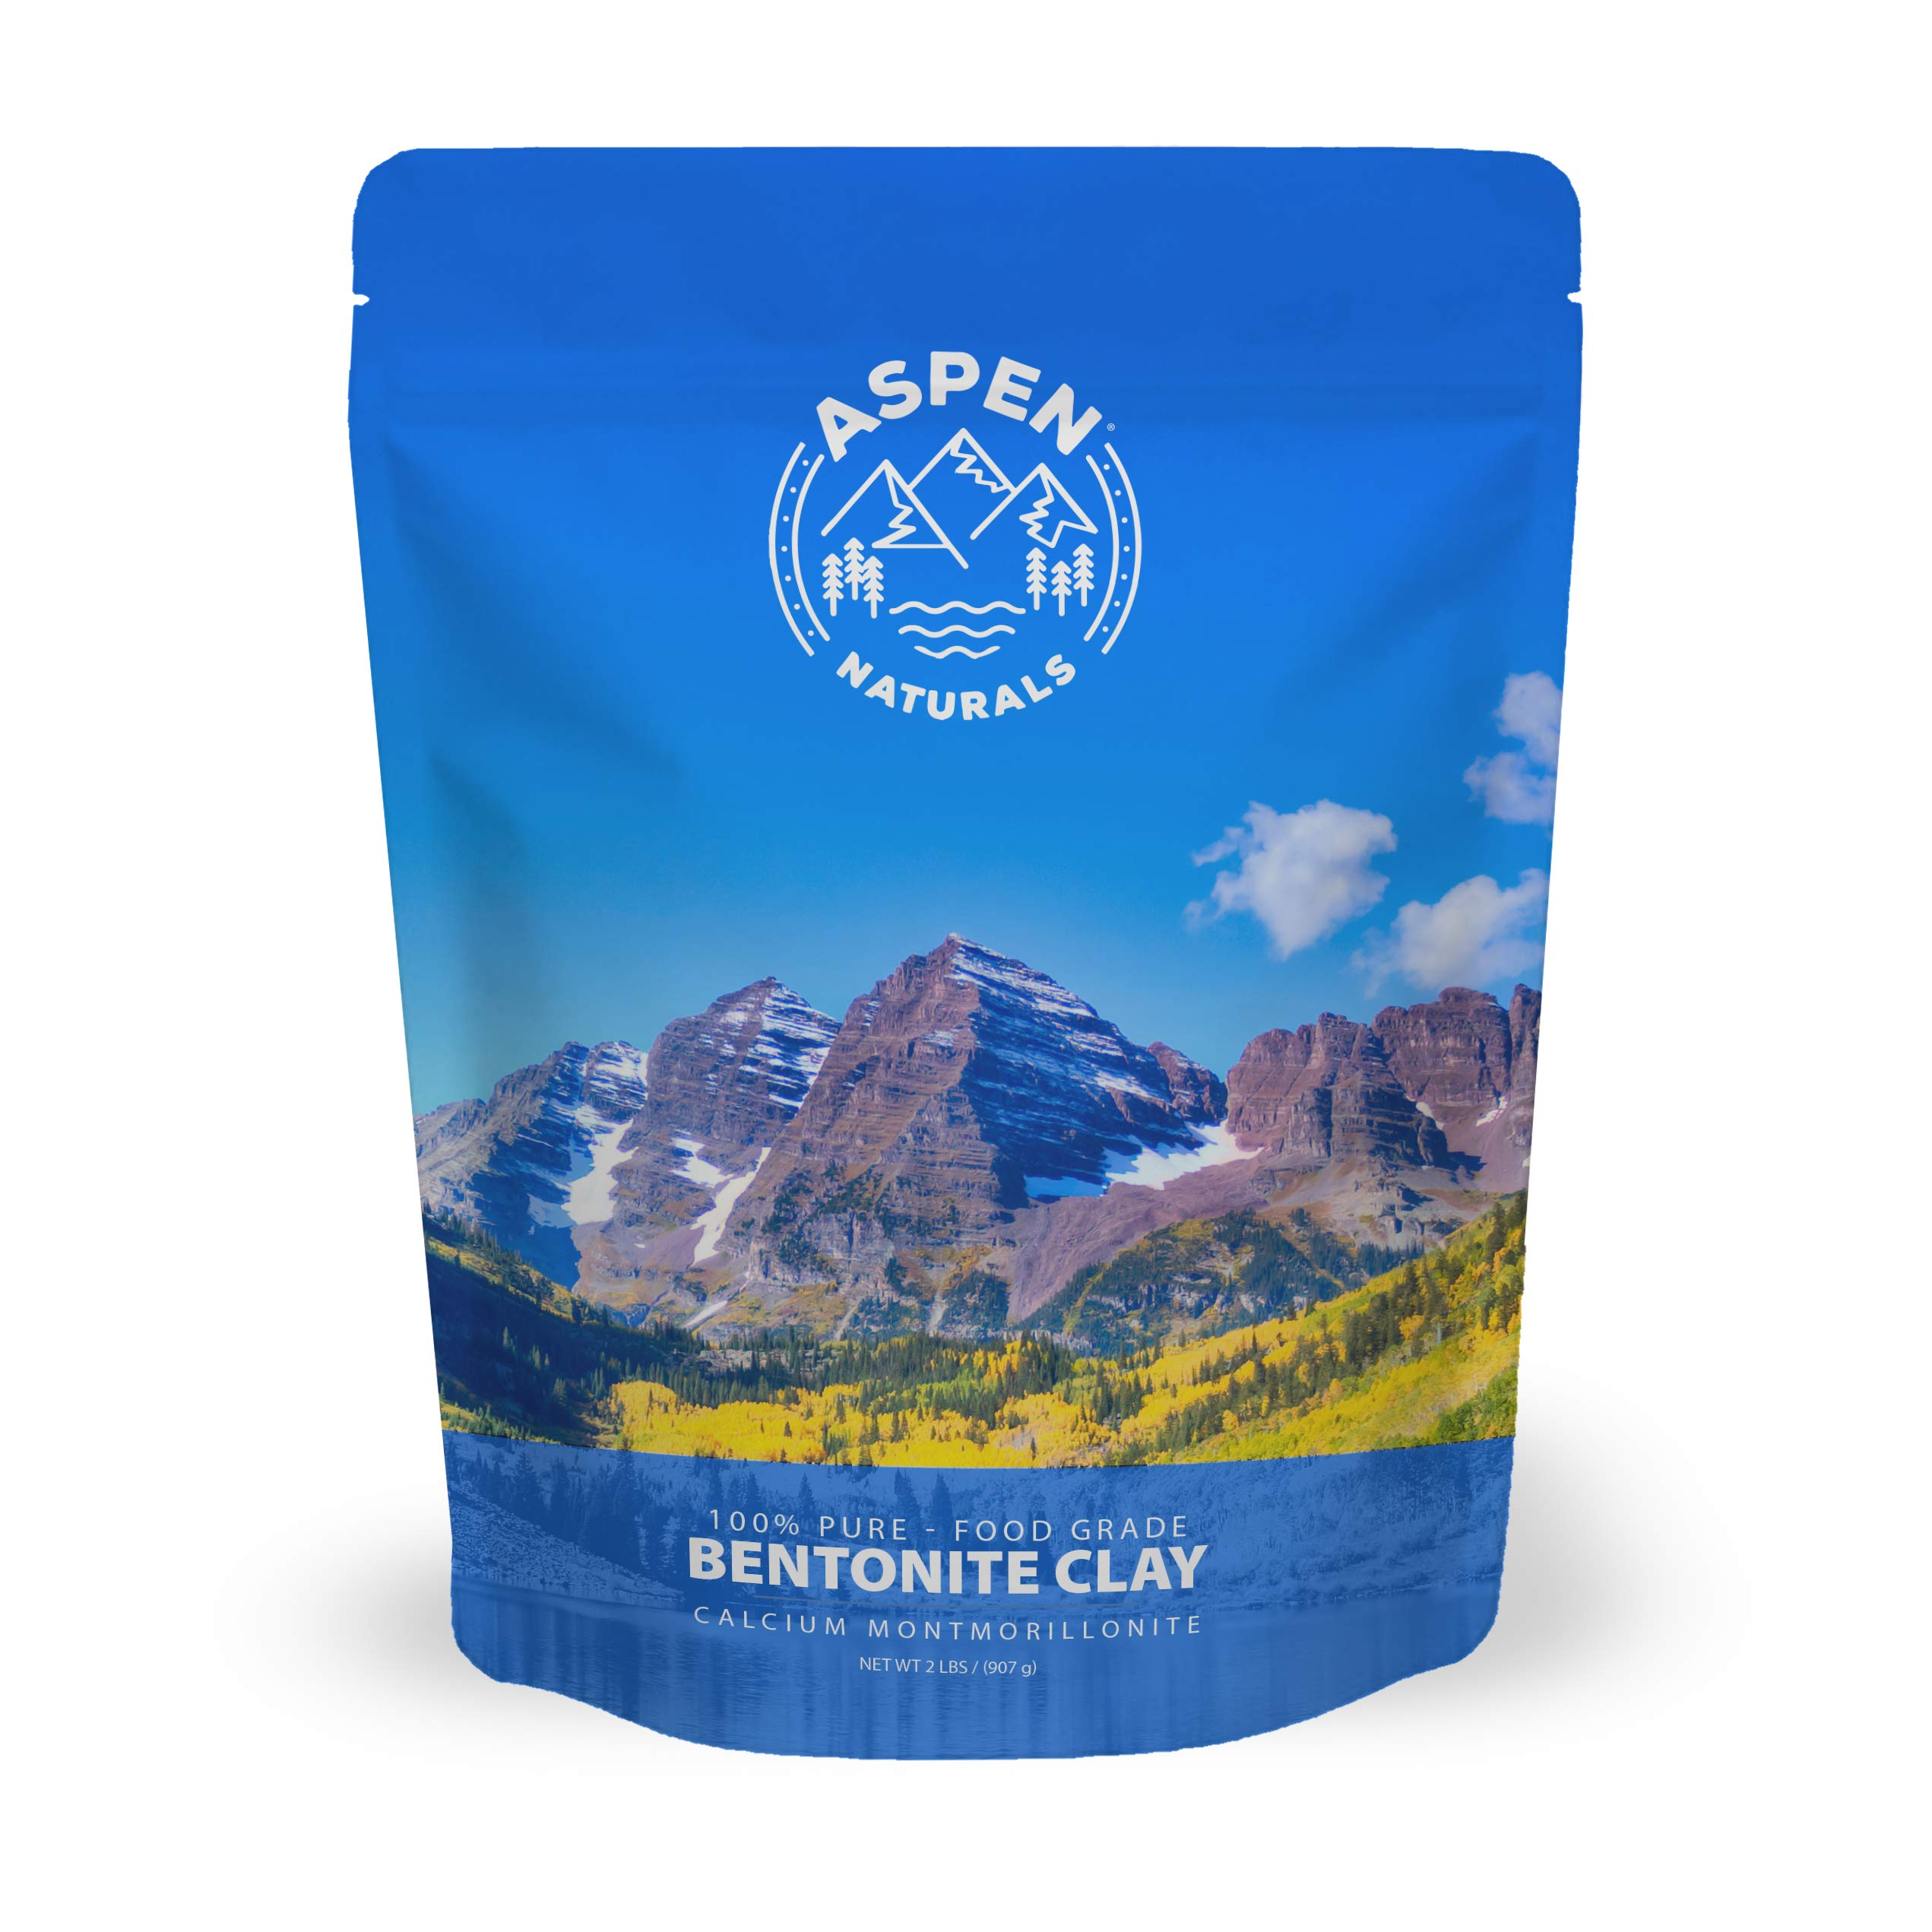 Food Grade Calcium Bentonite Clay - 2 LB Bentonite Montmorillonite Powder - Safe to Ingest for The Ultimate Internal Detox or Make a Clay Face Mask for The Best Natural Skin Healing Powder by Aspen Naturals® (Image #1)